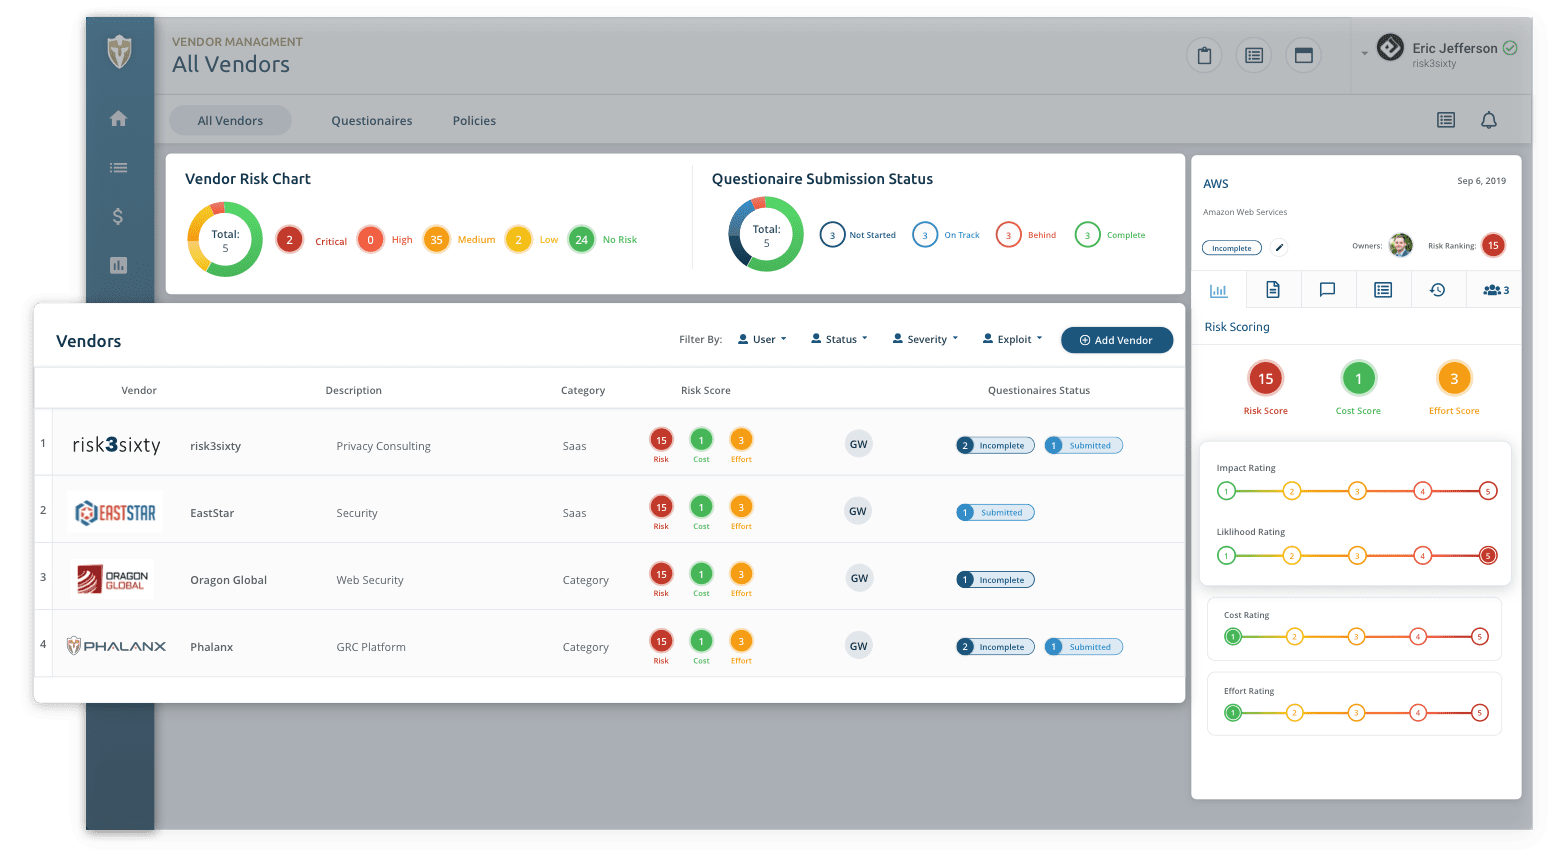 Vendor Management Screen